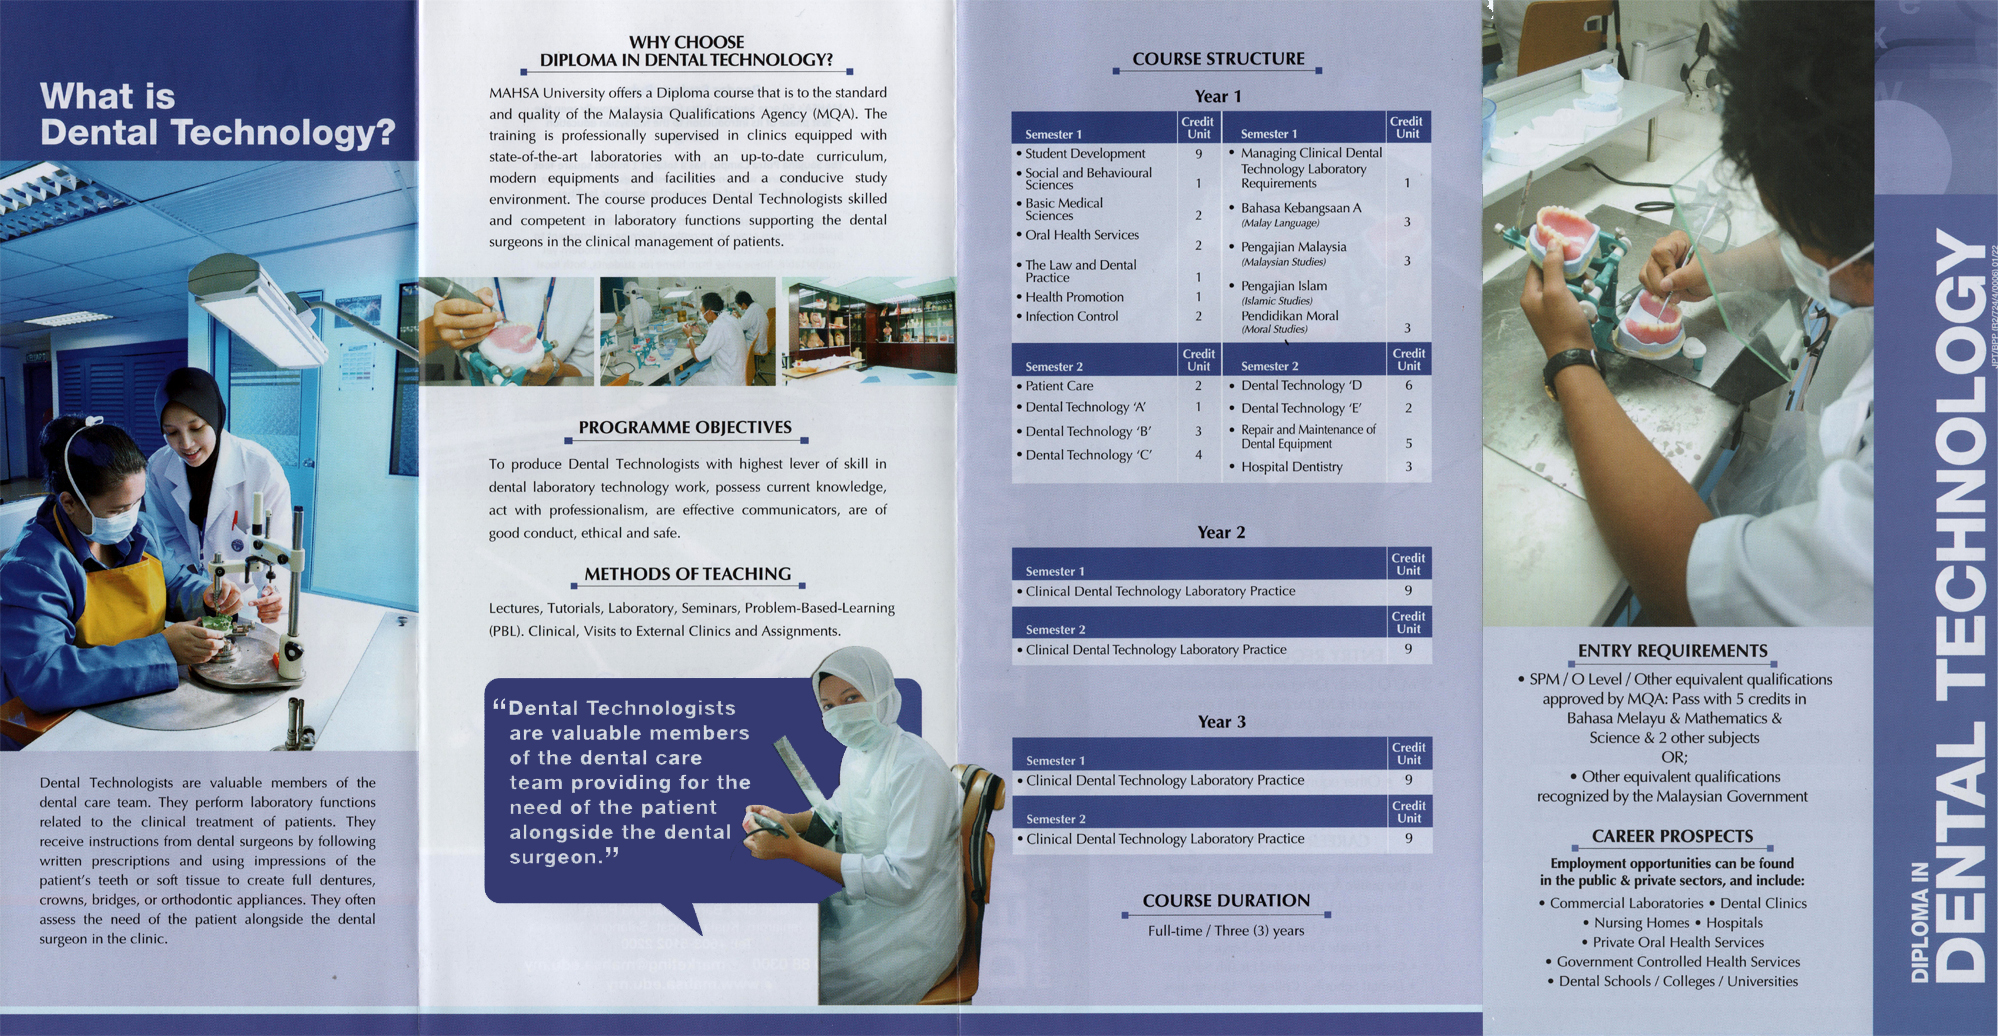 Diploma-in-Dental Technology